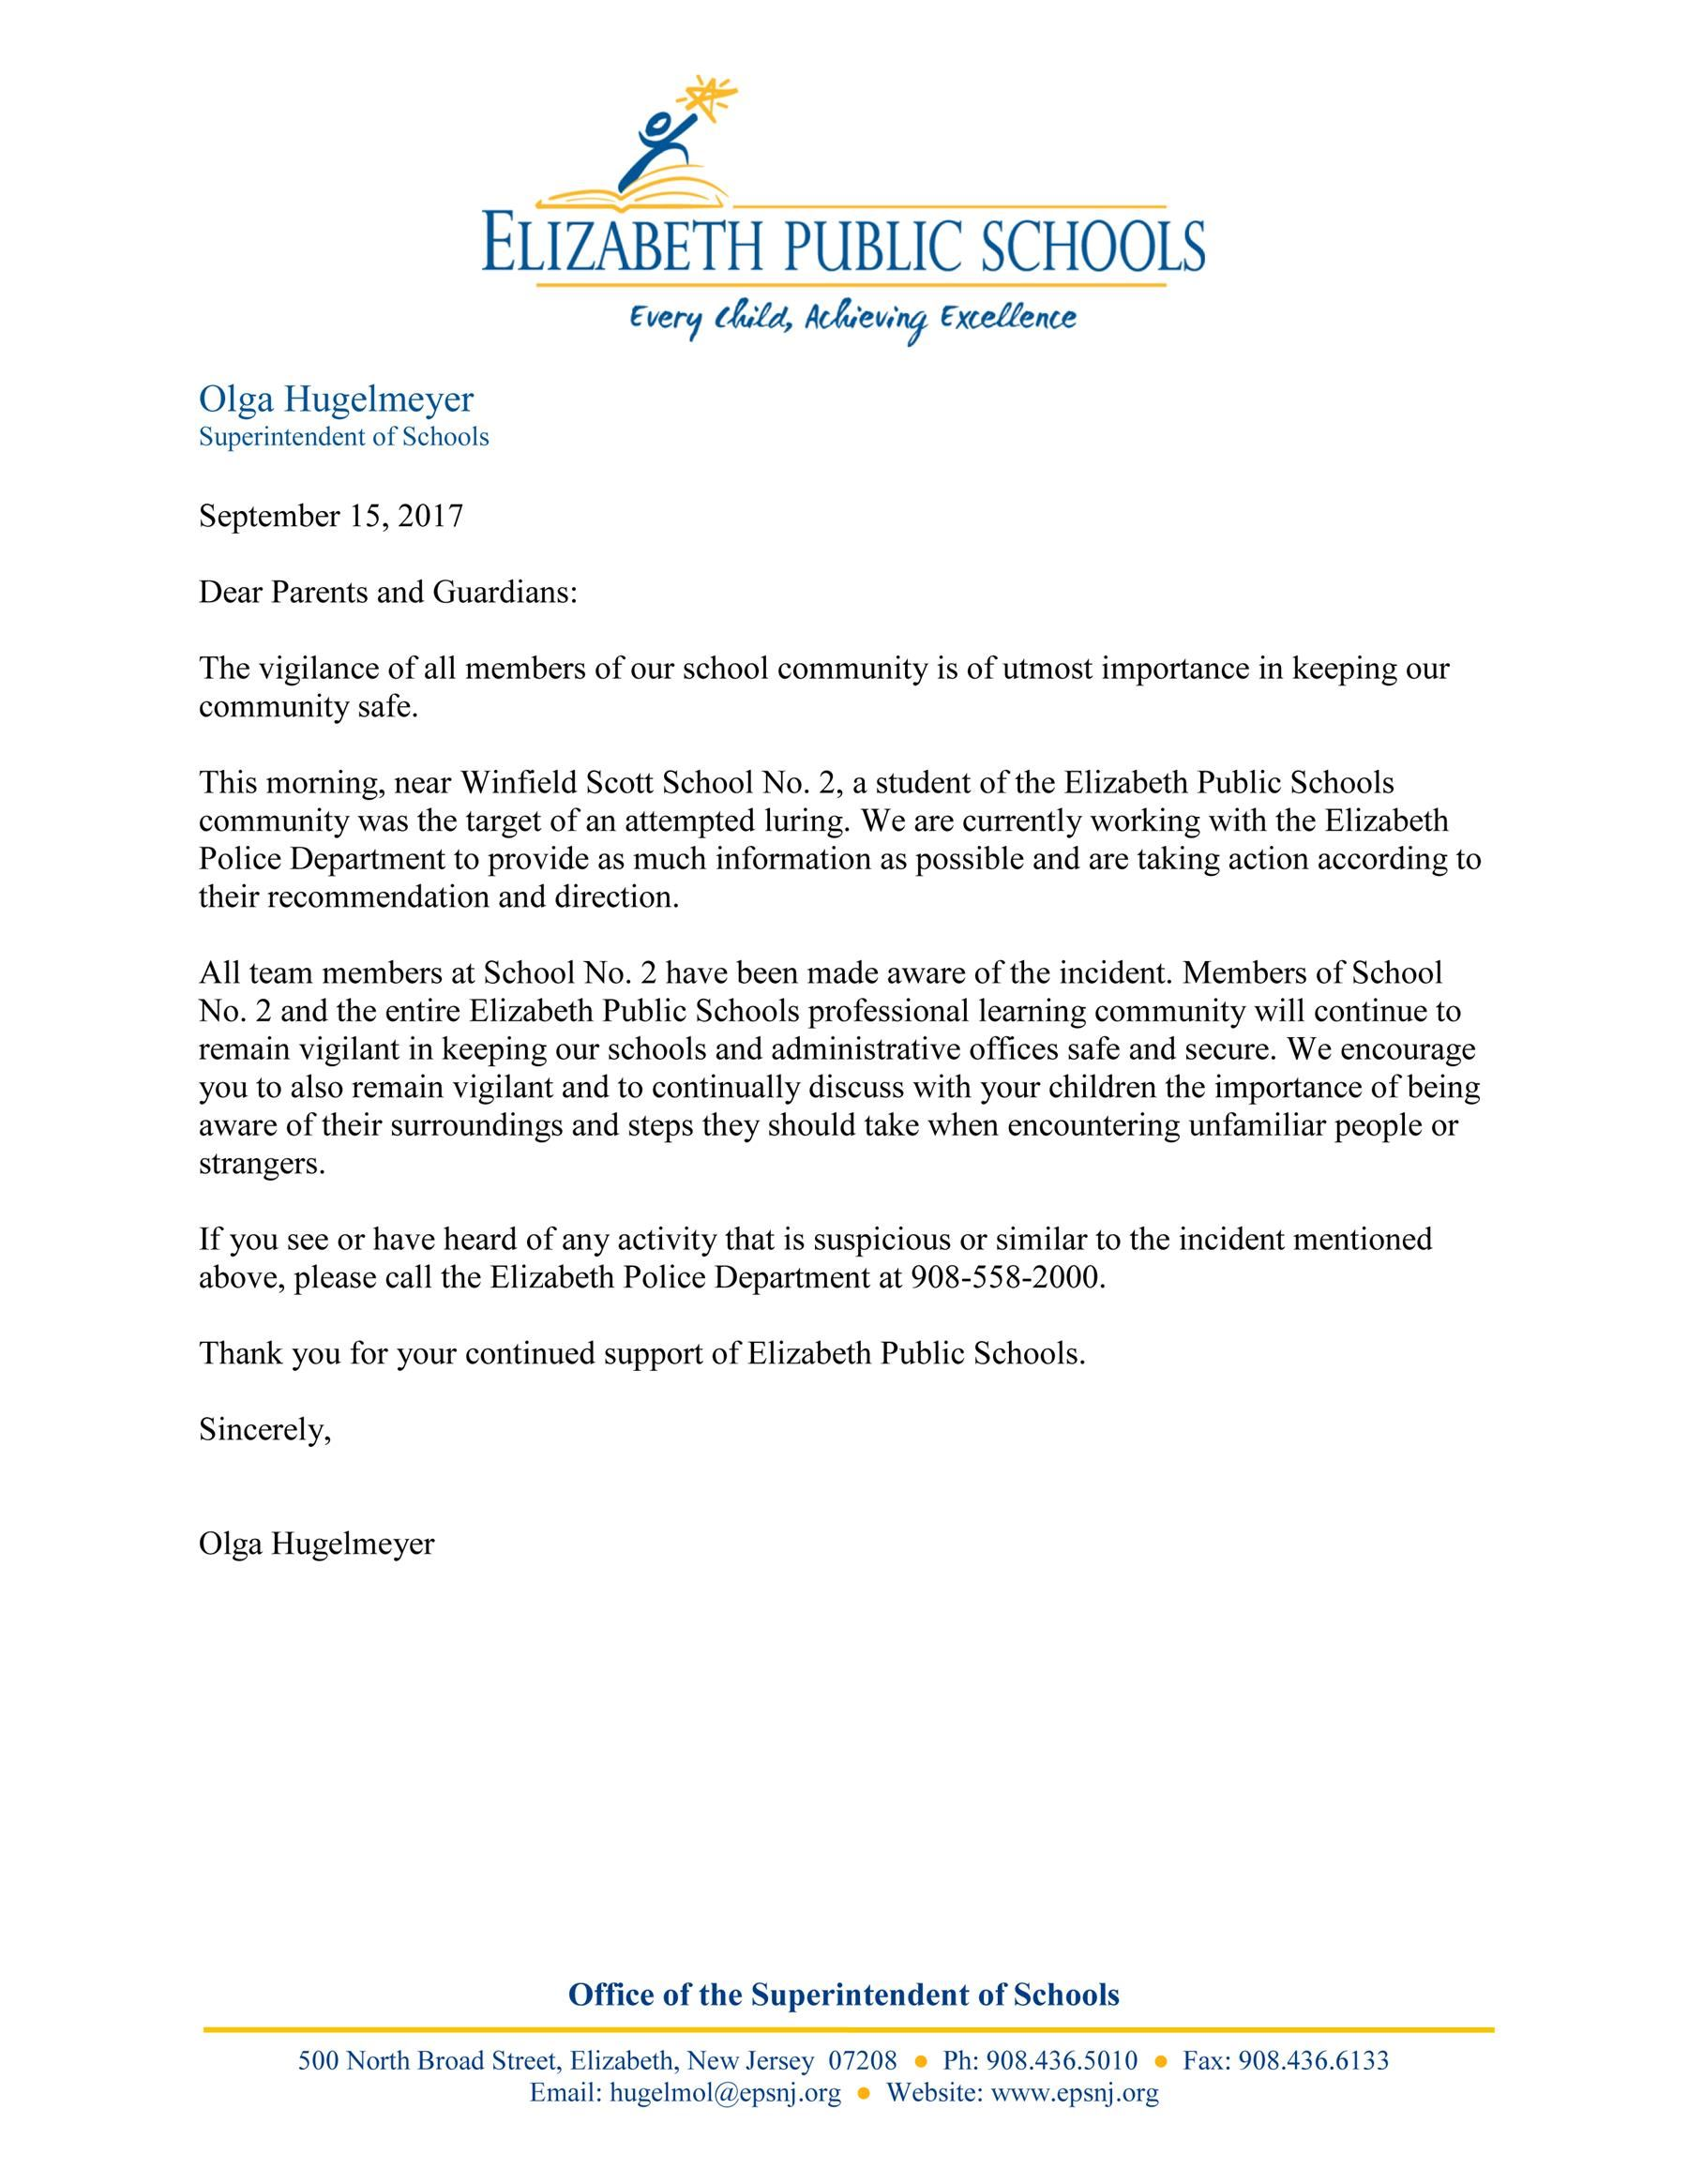 Letter Regarding Luring Incident at School No. 2